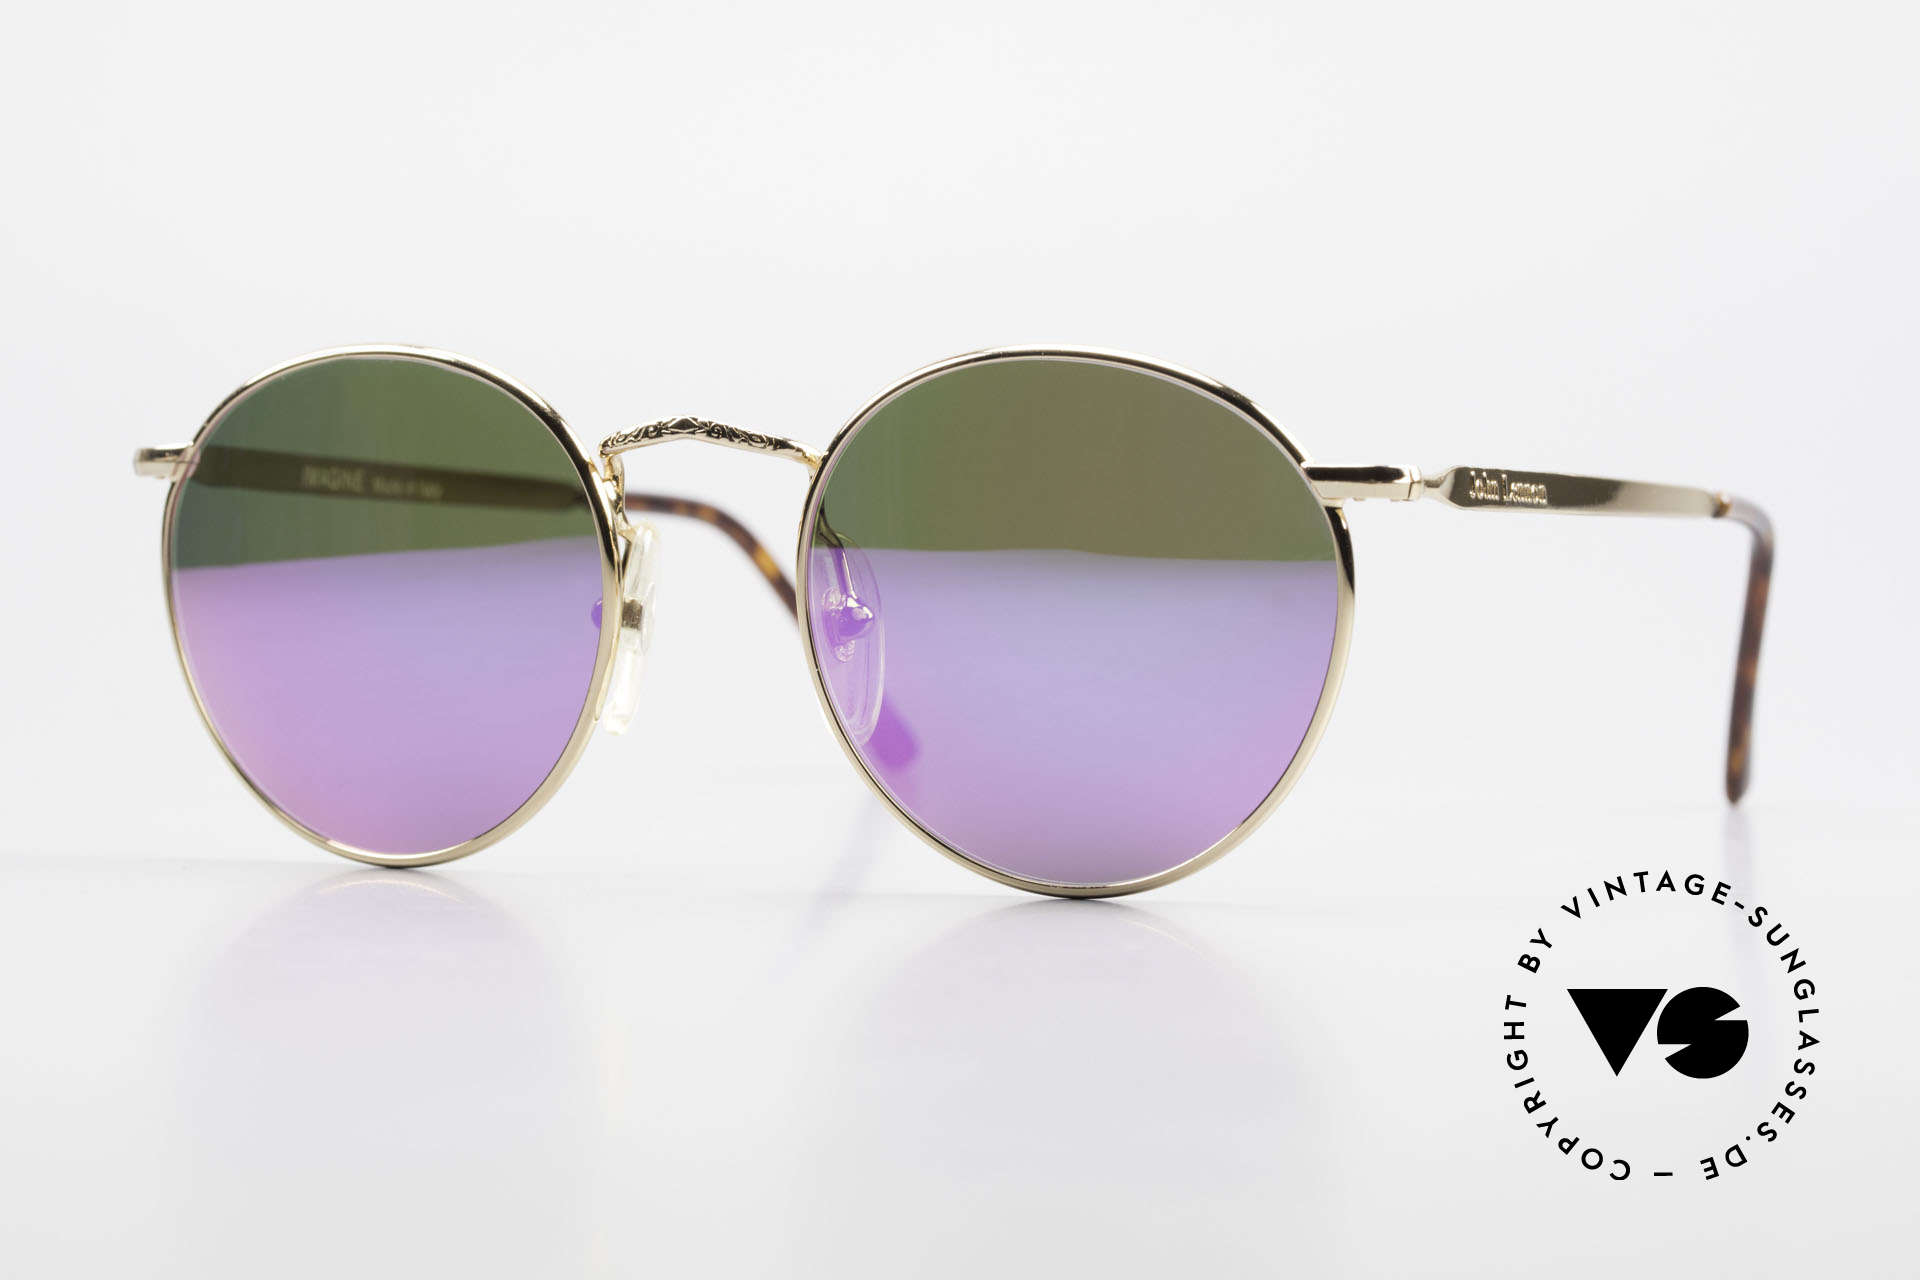 John Lennon - Imagine With Pink Mirrored Sun Lenses, vintage glasses of the original 'John Lennon Collection', Made for Men and Women